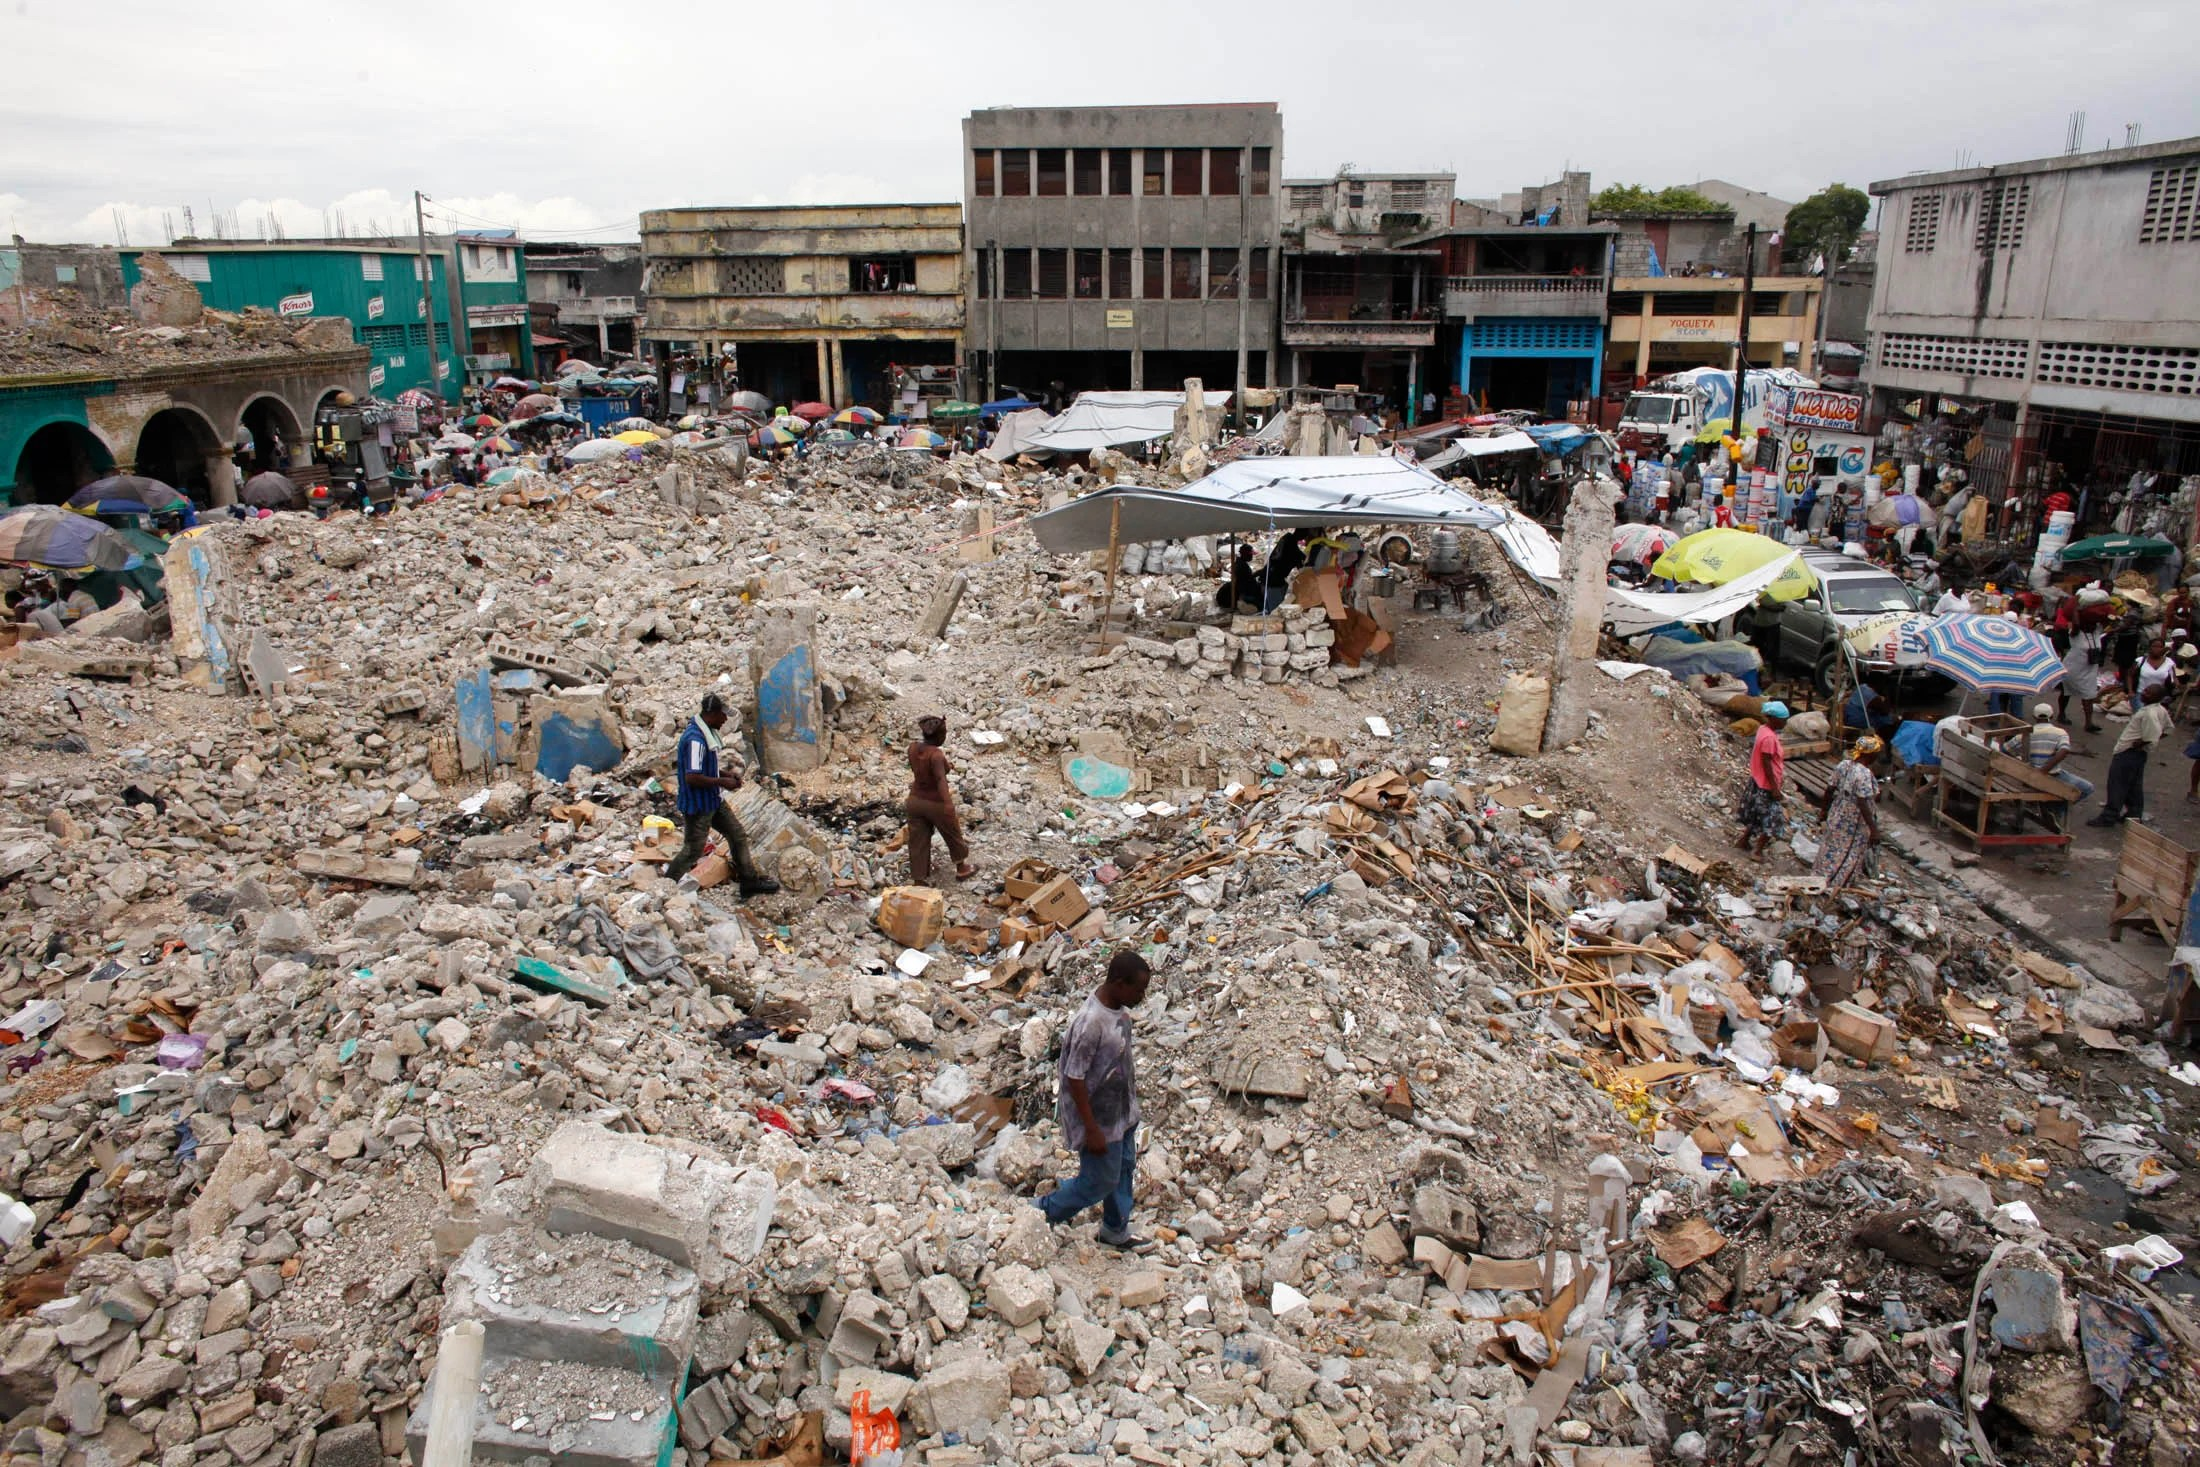 World Vision Denies Claims Staffually Exploited Haiti Earthquake Survivors